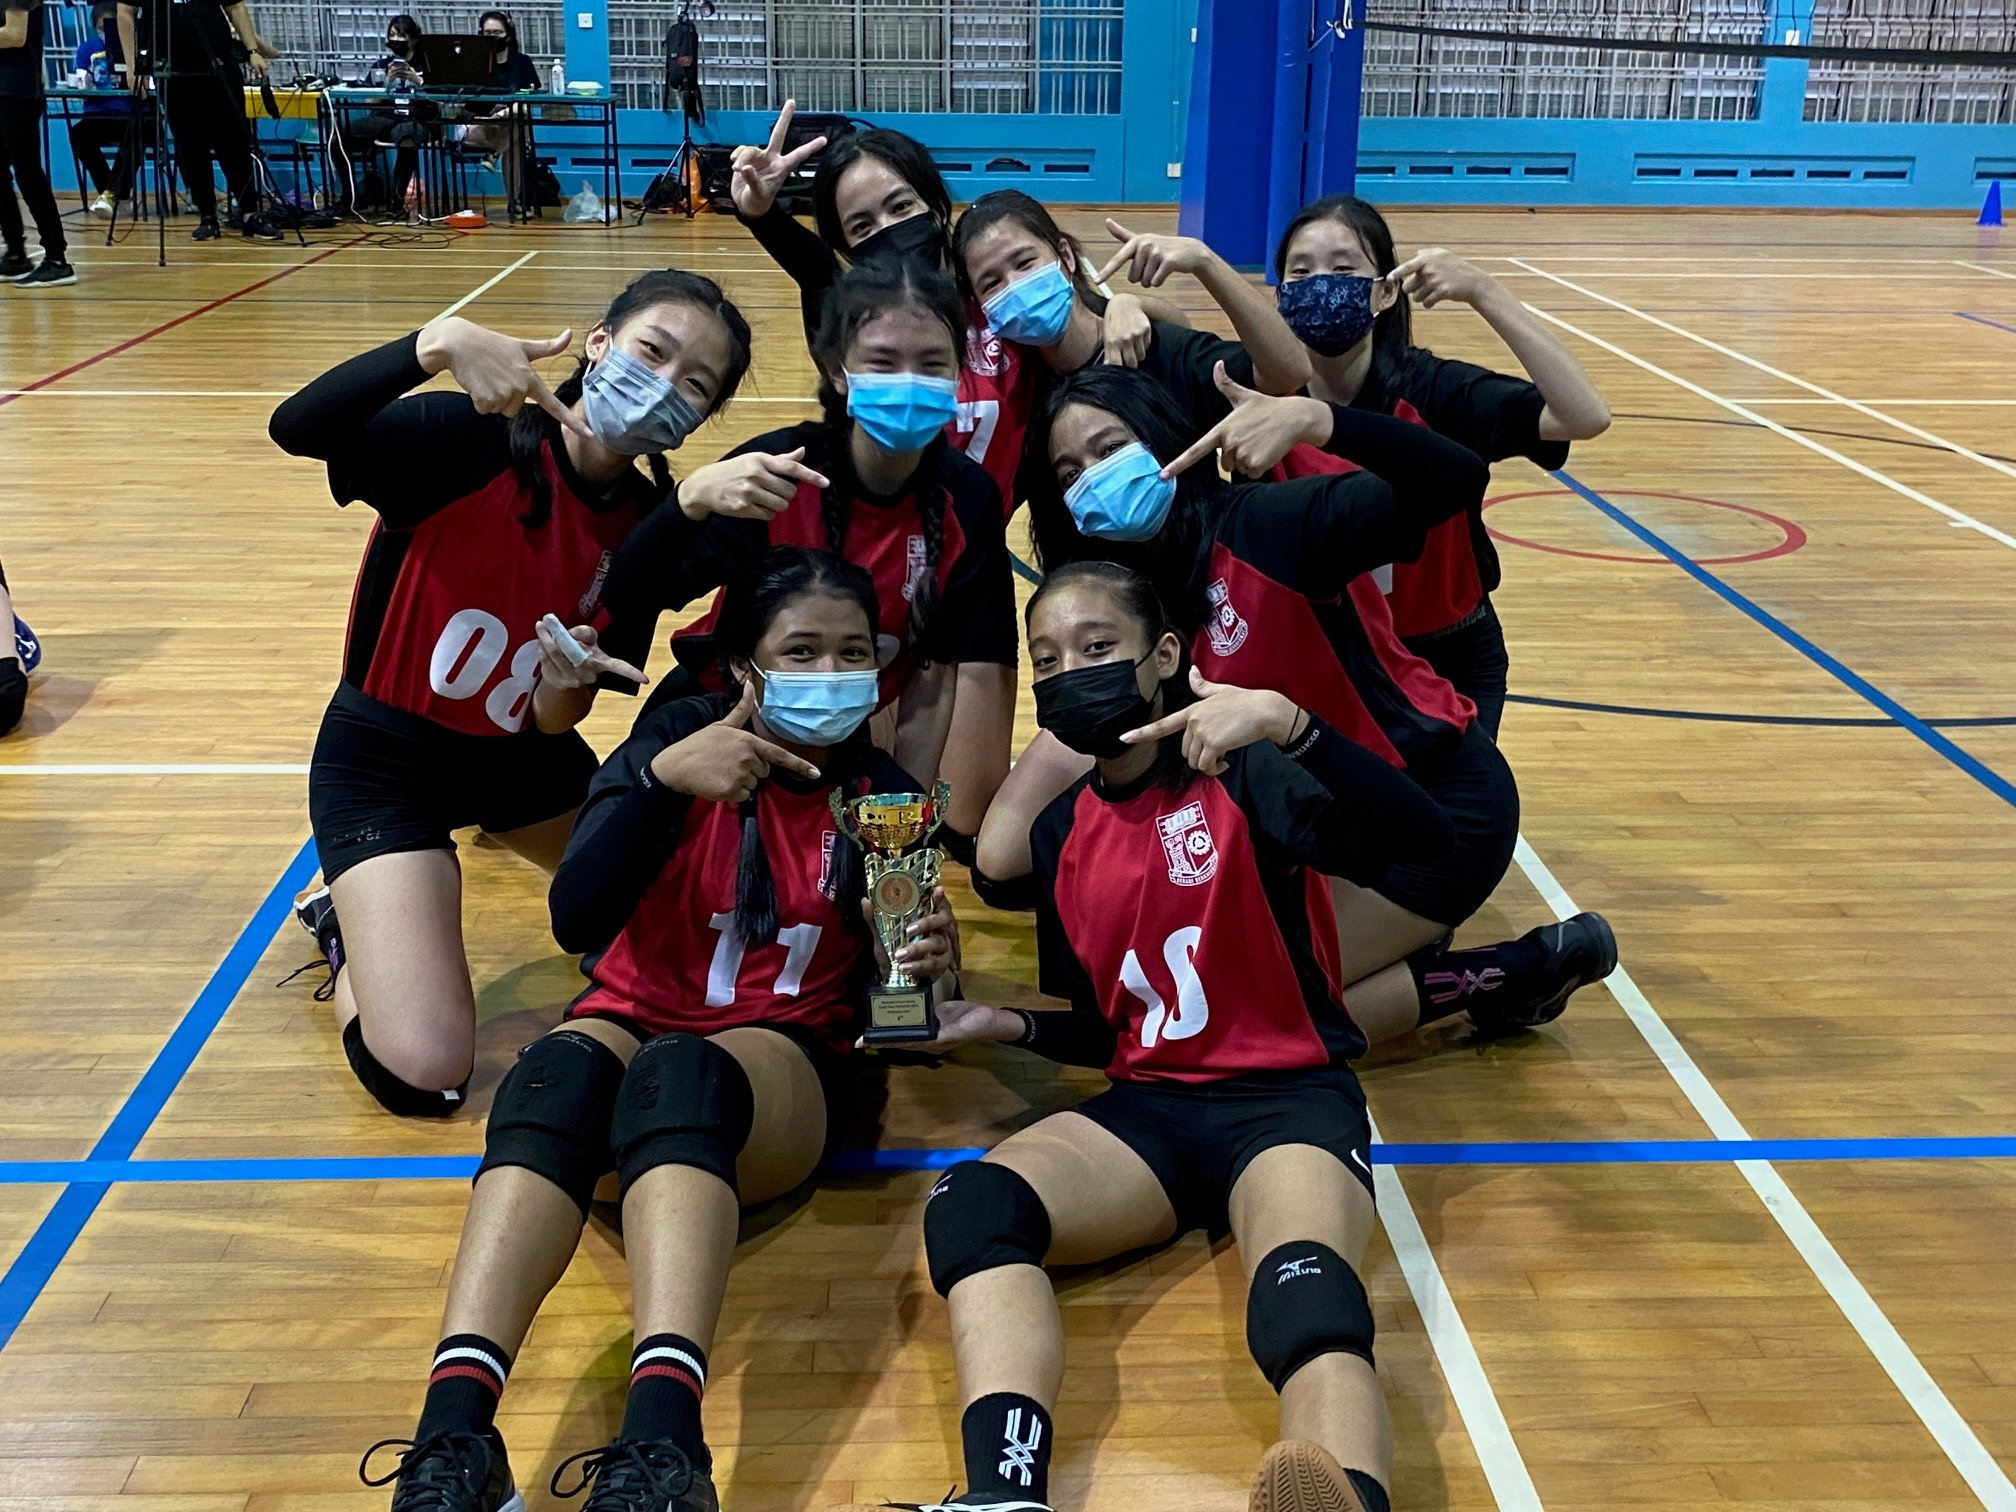 """NSG South Zone B Div Girls' 3 v 3 Volleyball: """"Battle of the Queens"""" saw Queenstown edge Queensway in thrilling final!"""